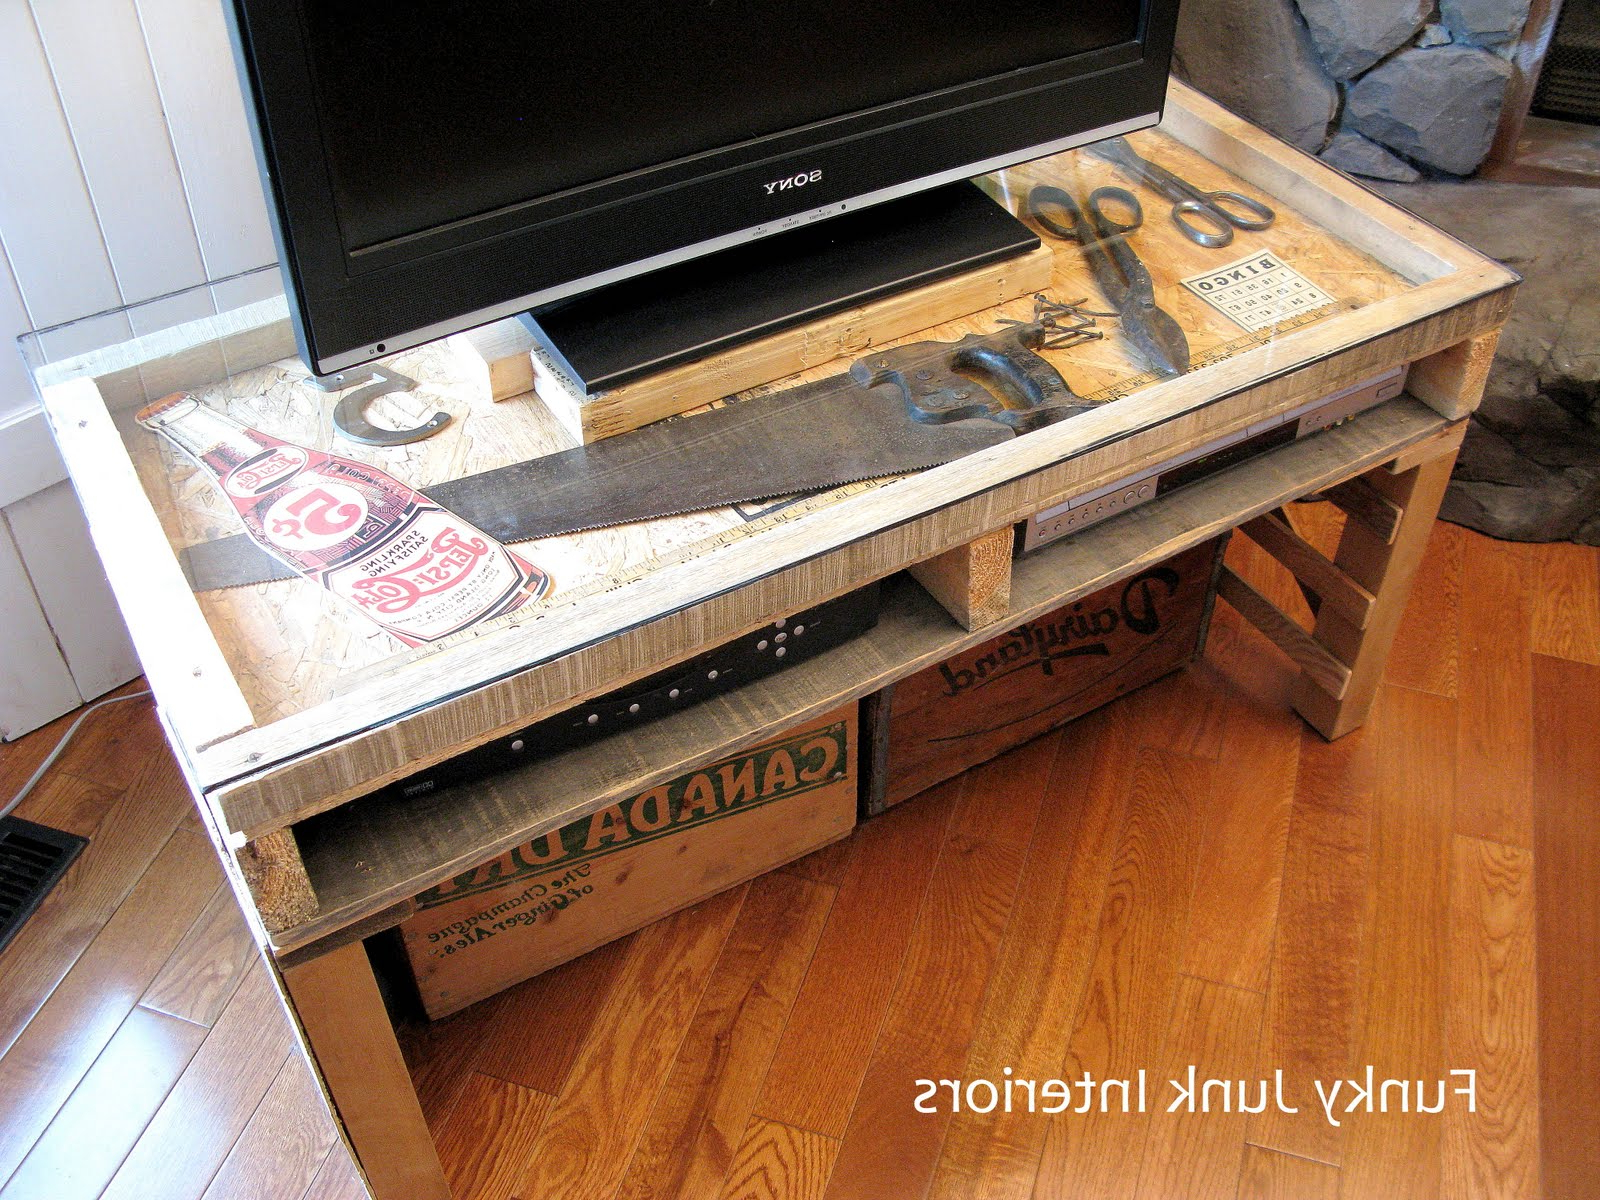 New Tv Stand Made From A Palletfunky Junk Interiors In Most Recently Released Funky Tv Stands (Gallery 9 of 20)